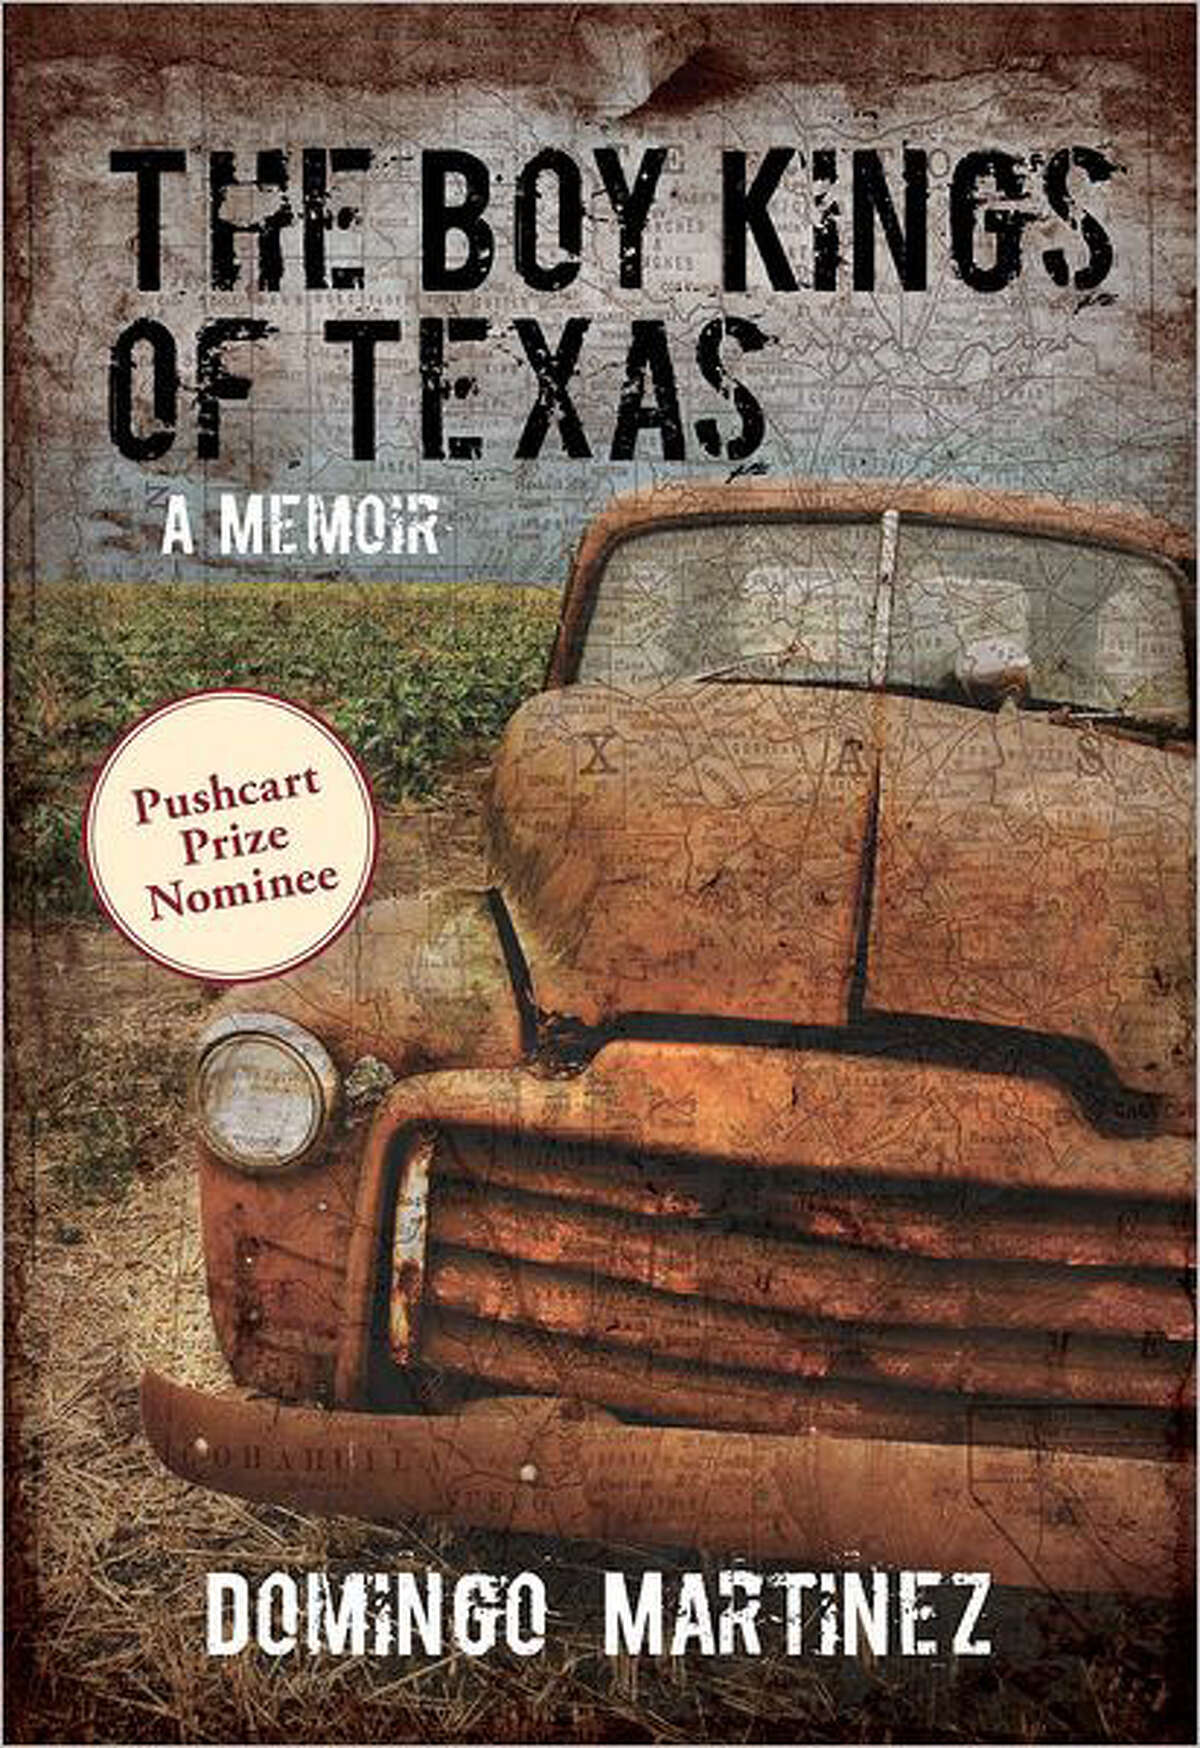 """In his powerful new memoir """"The Boy Kings of Texas,"""" Domingo Martinez doesn't shy away from the violence and fear he encountered growing up in Brownsville, yet he also finds much to love and defend about his childhood home."""